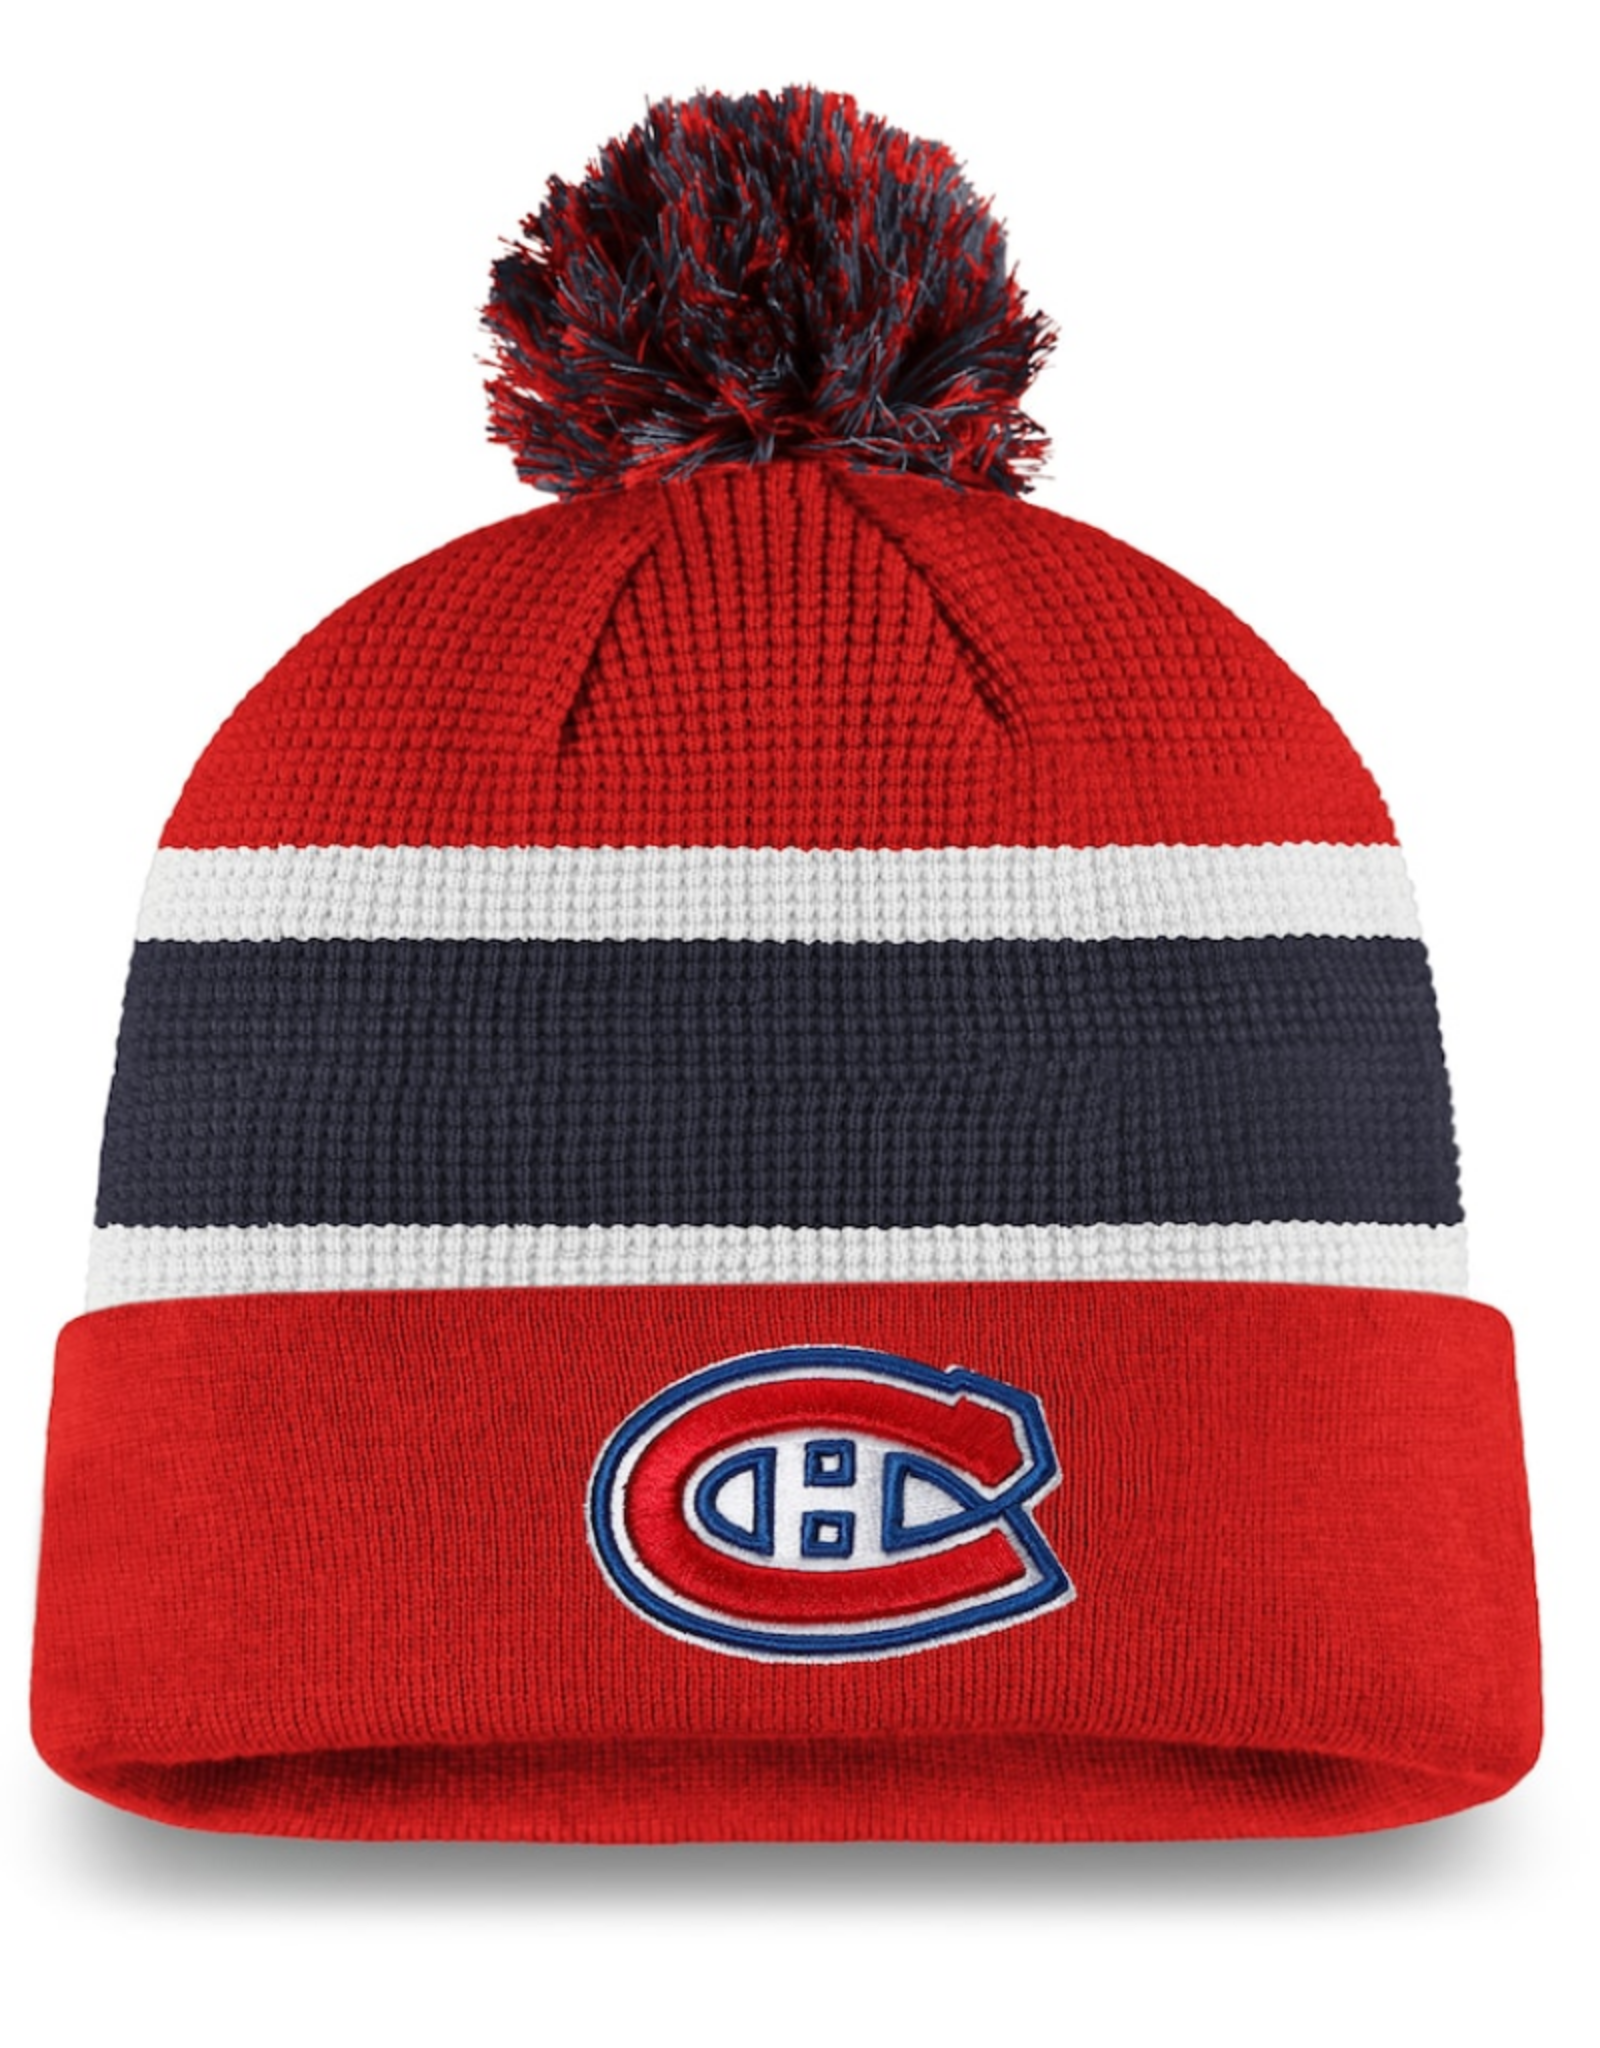 Fanatics Fanatics Men's Locker Room '20 Draft Knit Montreal Canadiens Red